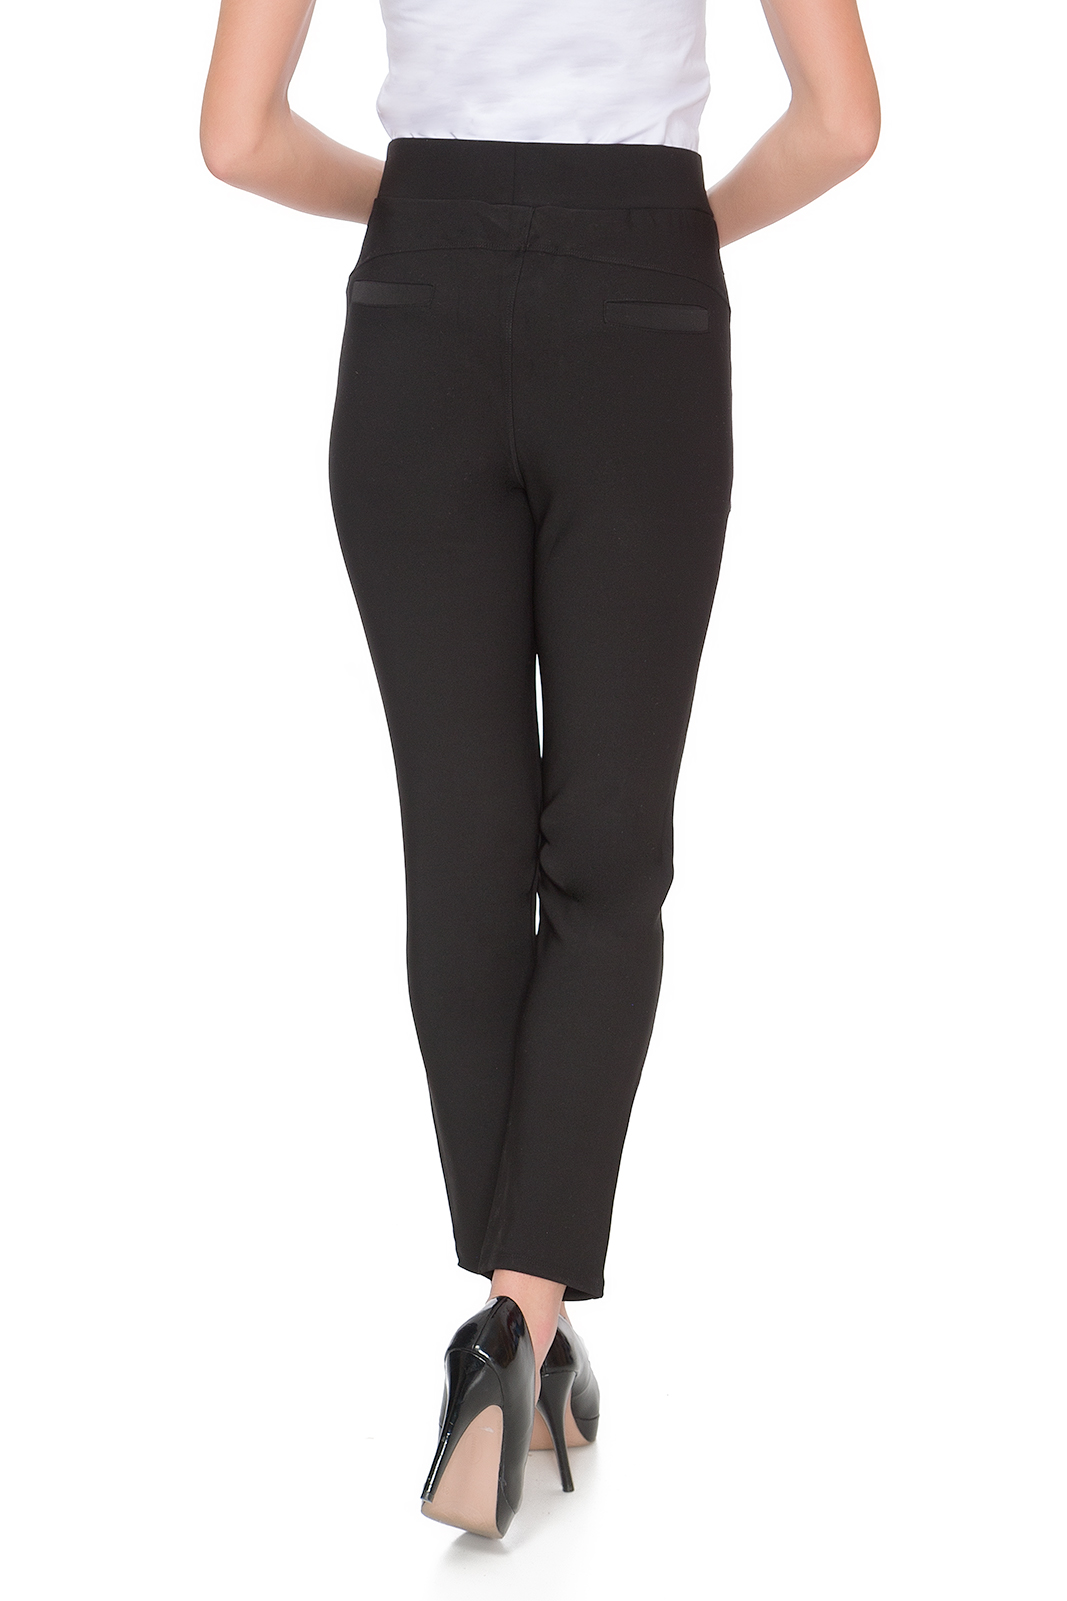 Women/'s Ankle Length Casual Pants Elegant High Waist Trousers Size 10-16 DN18024